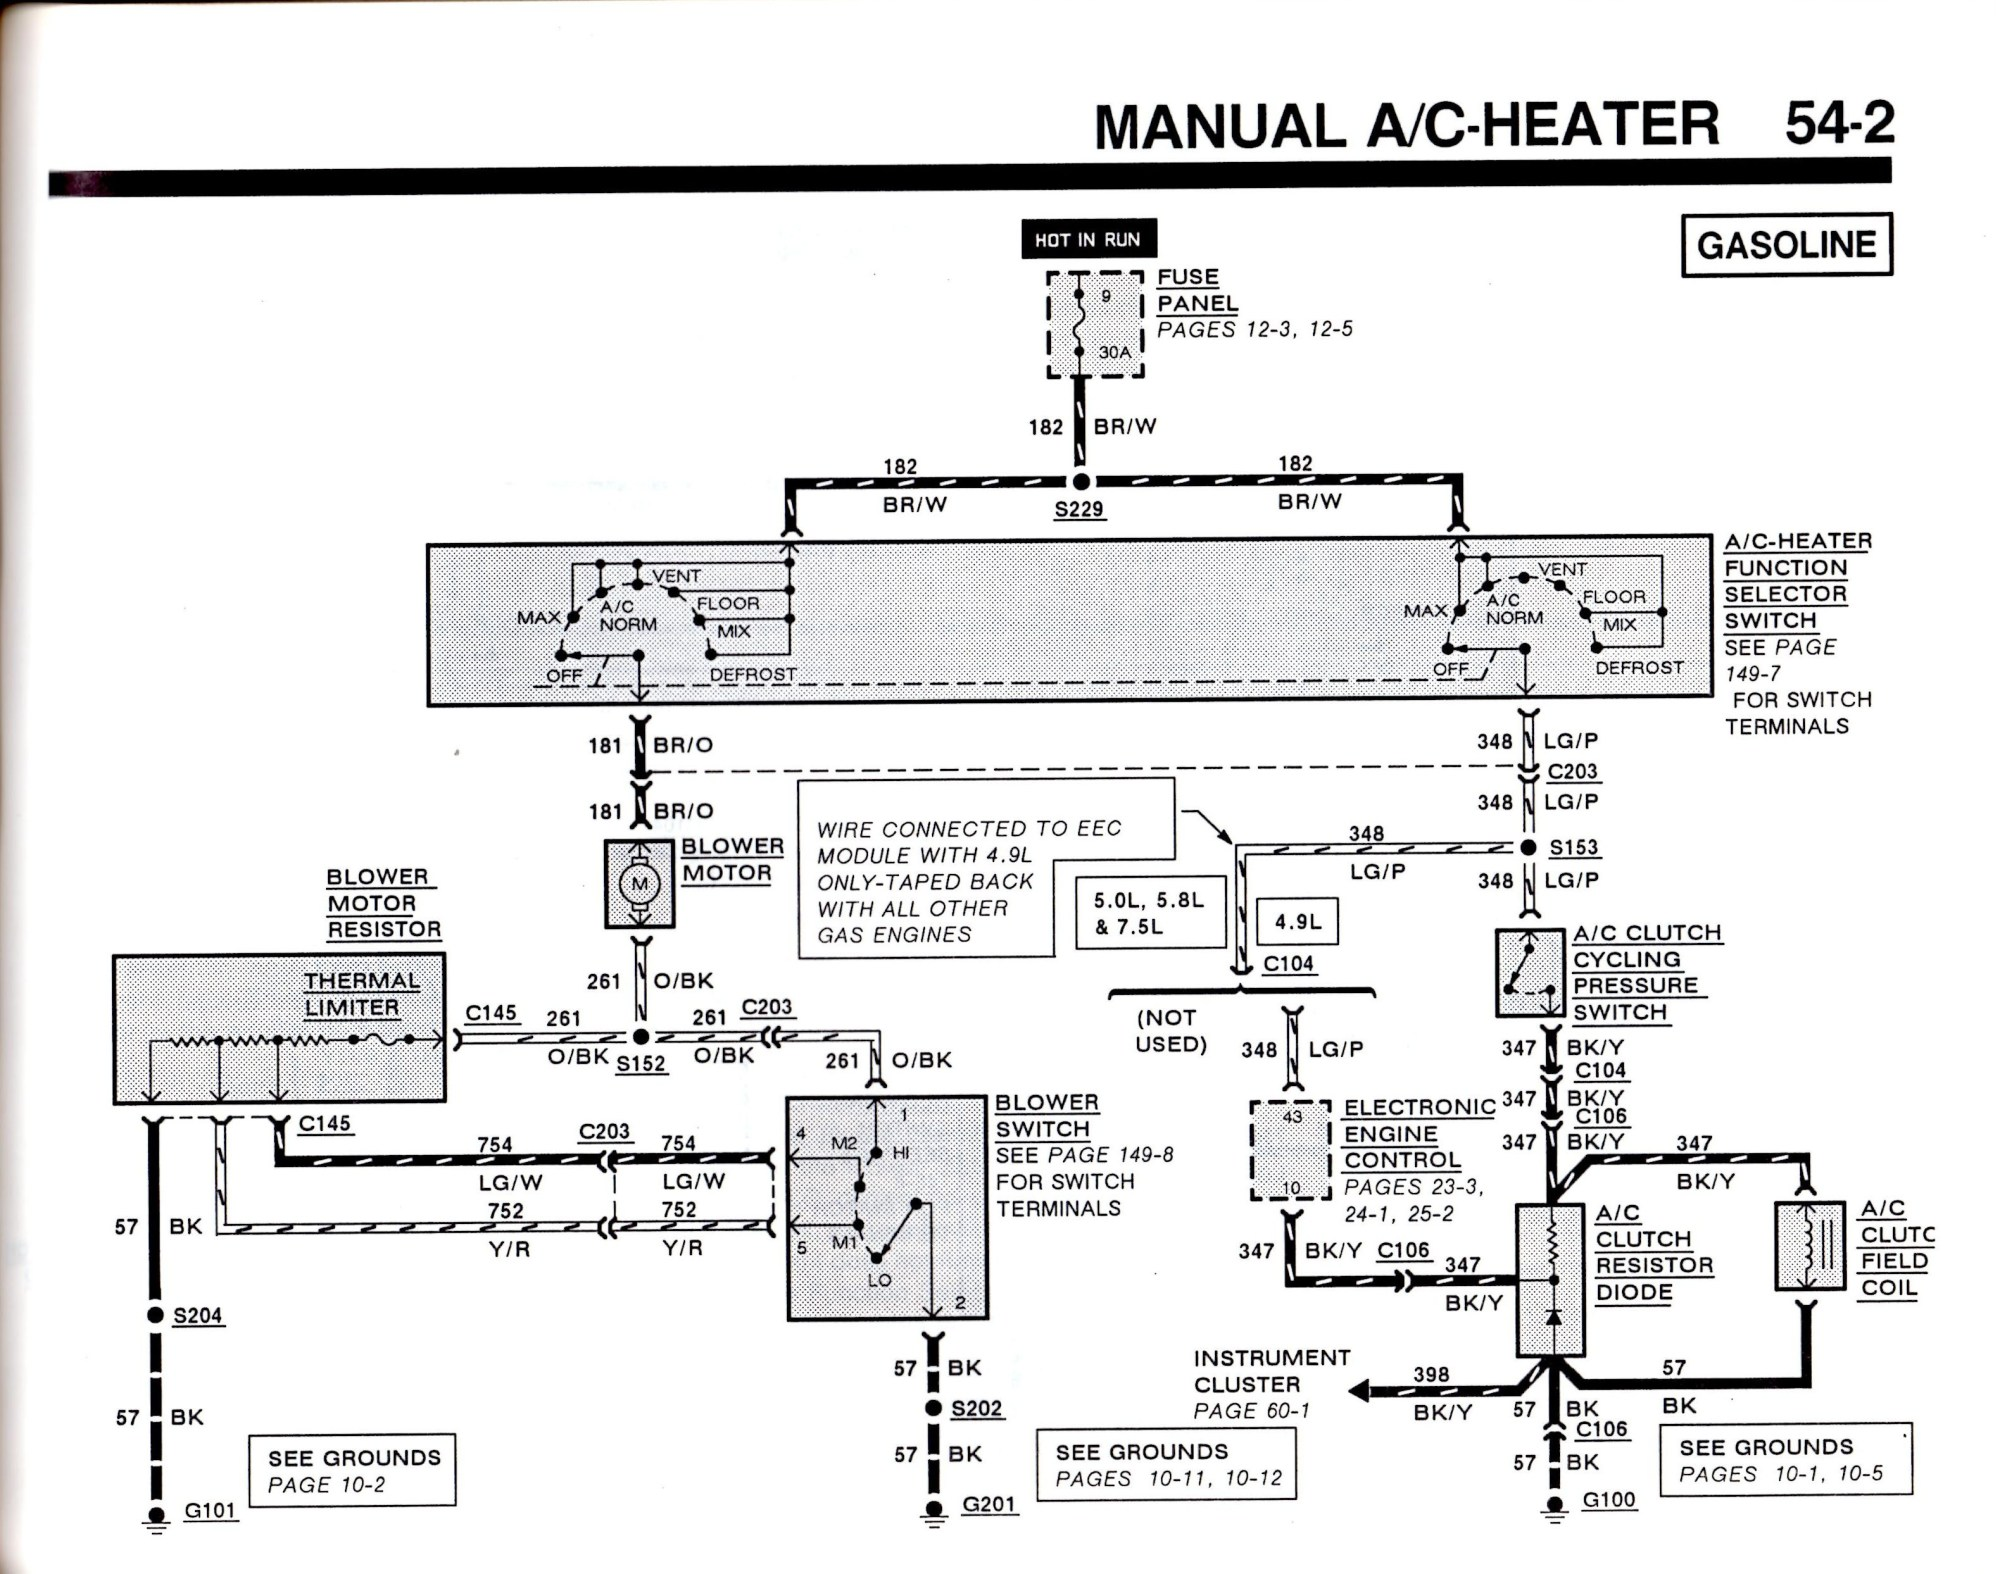 hight resolution of 99 f150 ac heater wiring diagram wiring diagram technic 1999 ford f 150 wiring diagram hvac